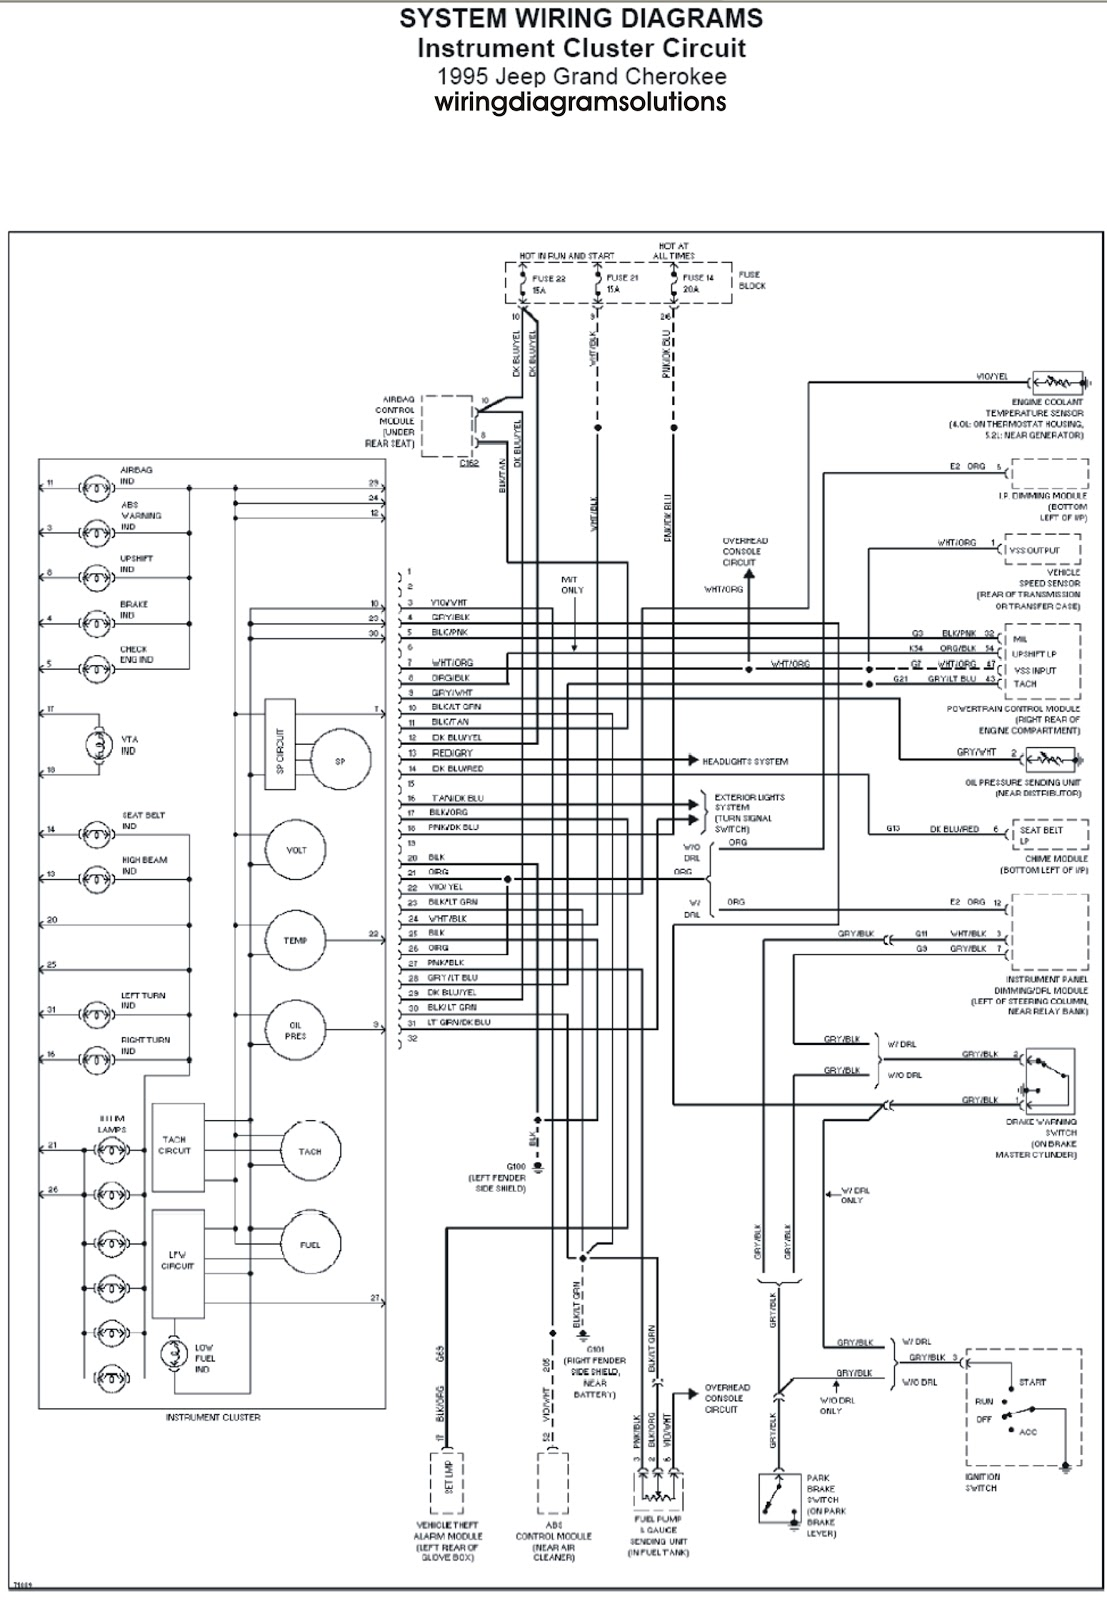 Wiring Diagram For 1996 Jeep Grand Cherokee Limited Wiring